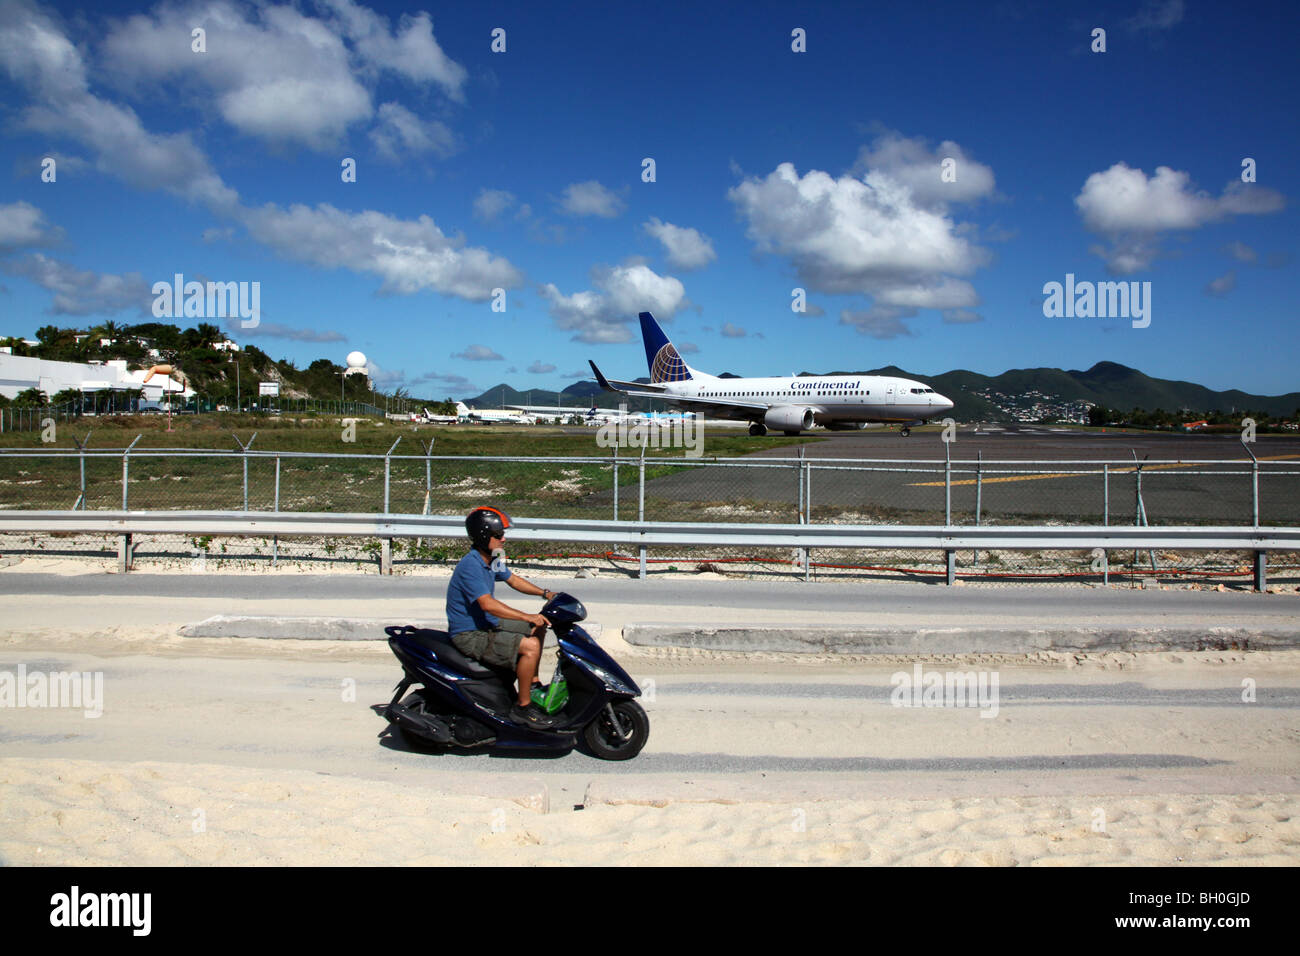 Man riding scooter near Continental Airlines 737 on tarmac - Stock Image